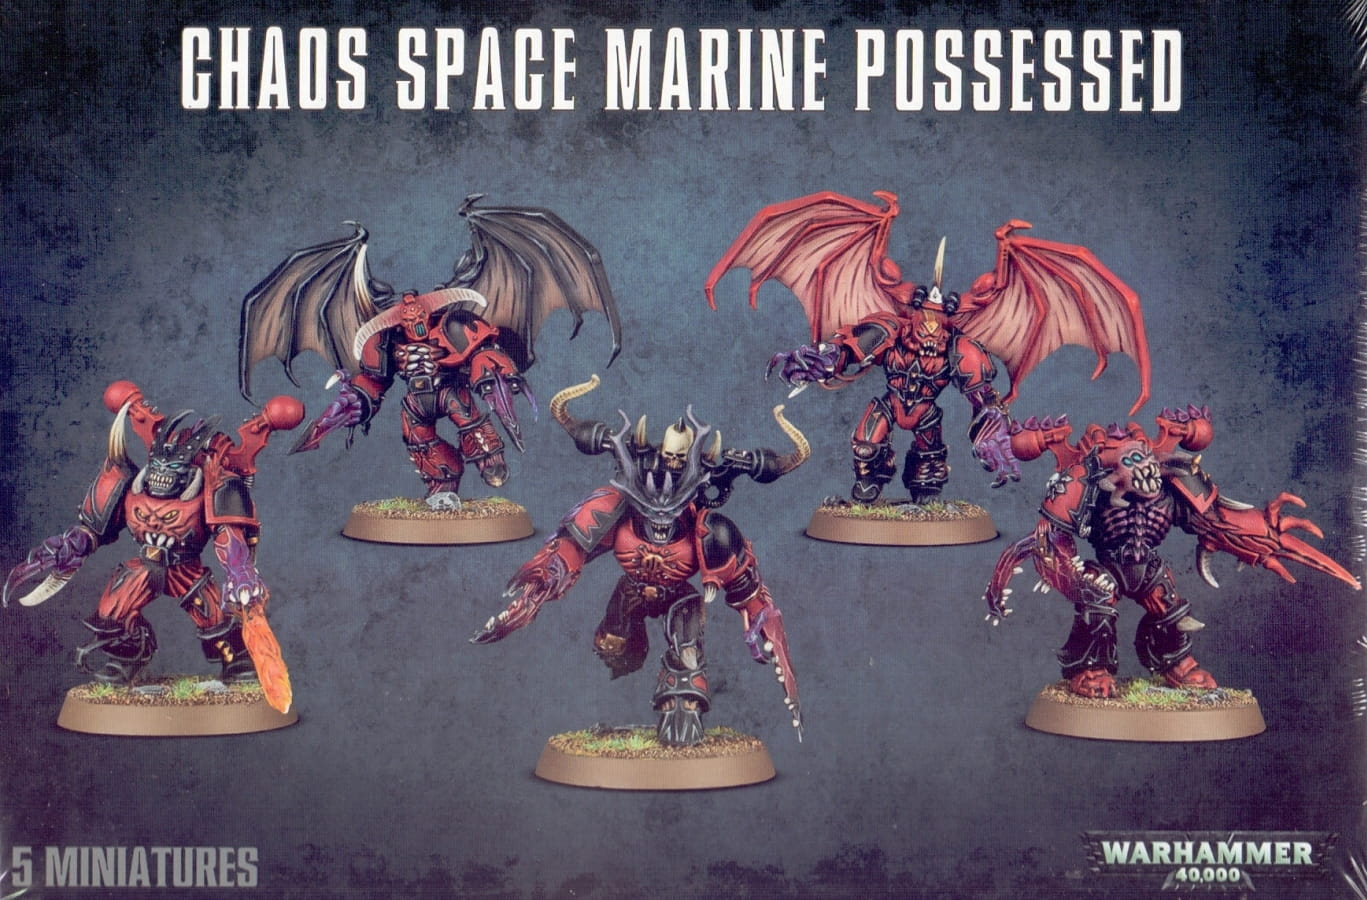 Warhammer 40,000: Chaos Space Marines Possessed